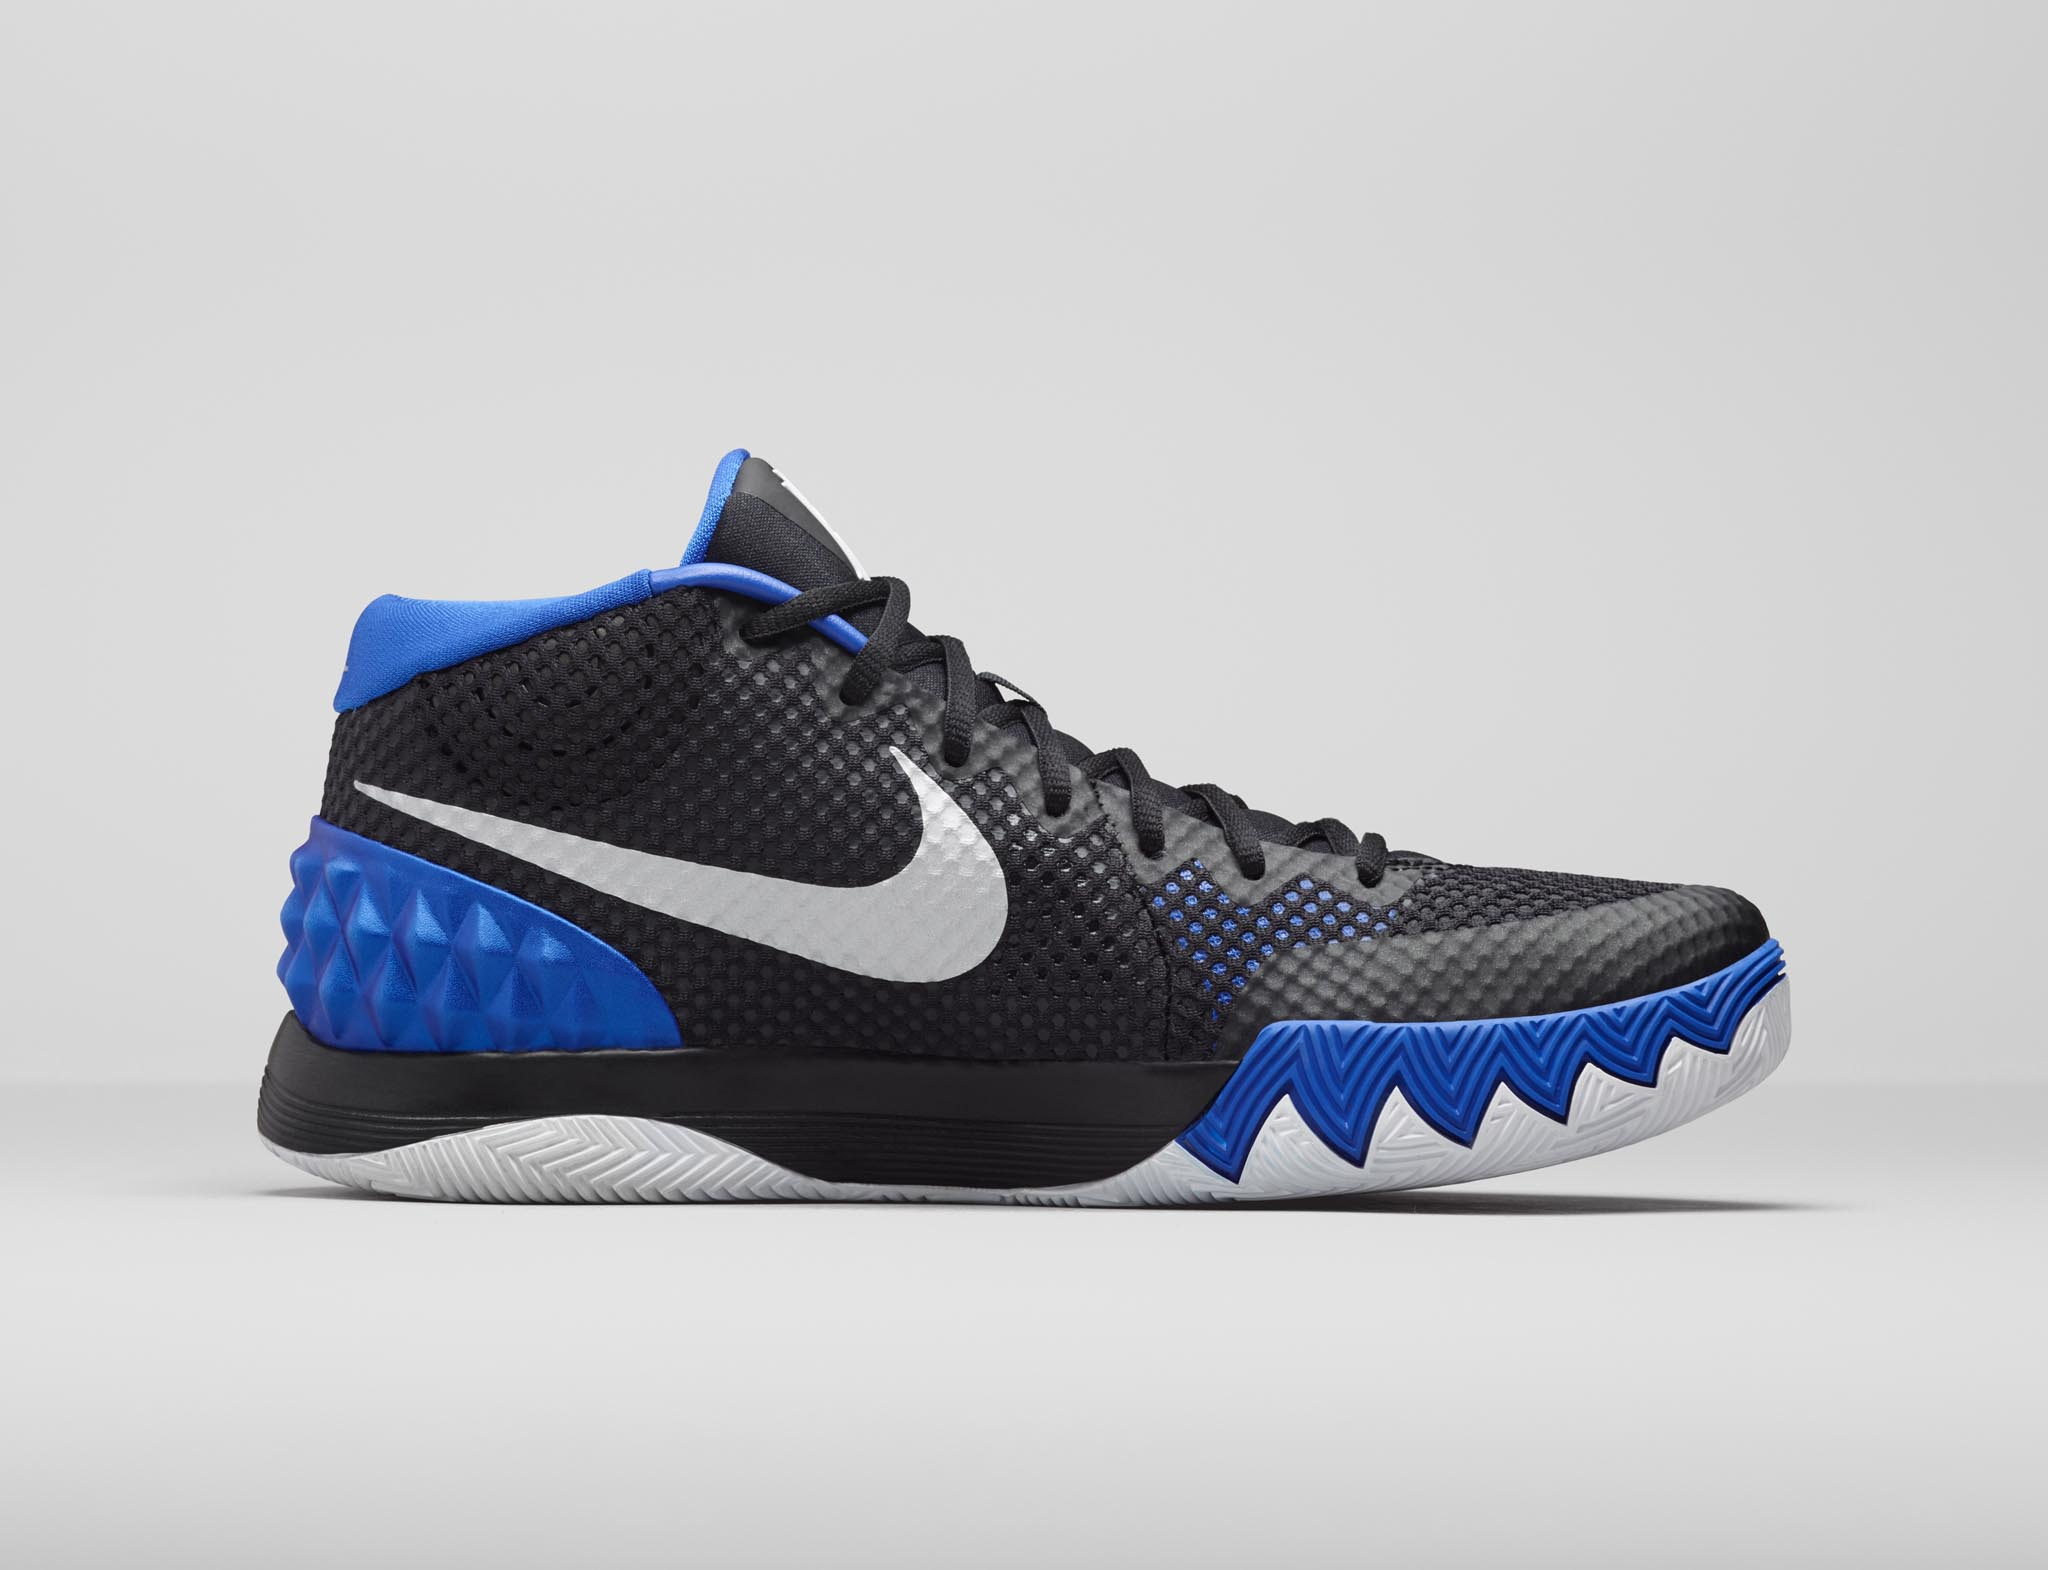 new arrival 052e5 dc934 Nike Kyrie 1 Yeezy Solar Red Cool Basketball Shoes   Outlet Online,